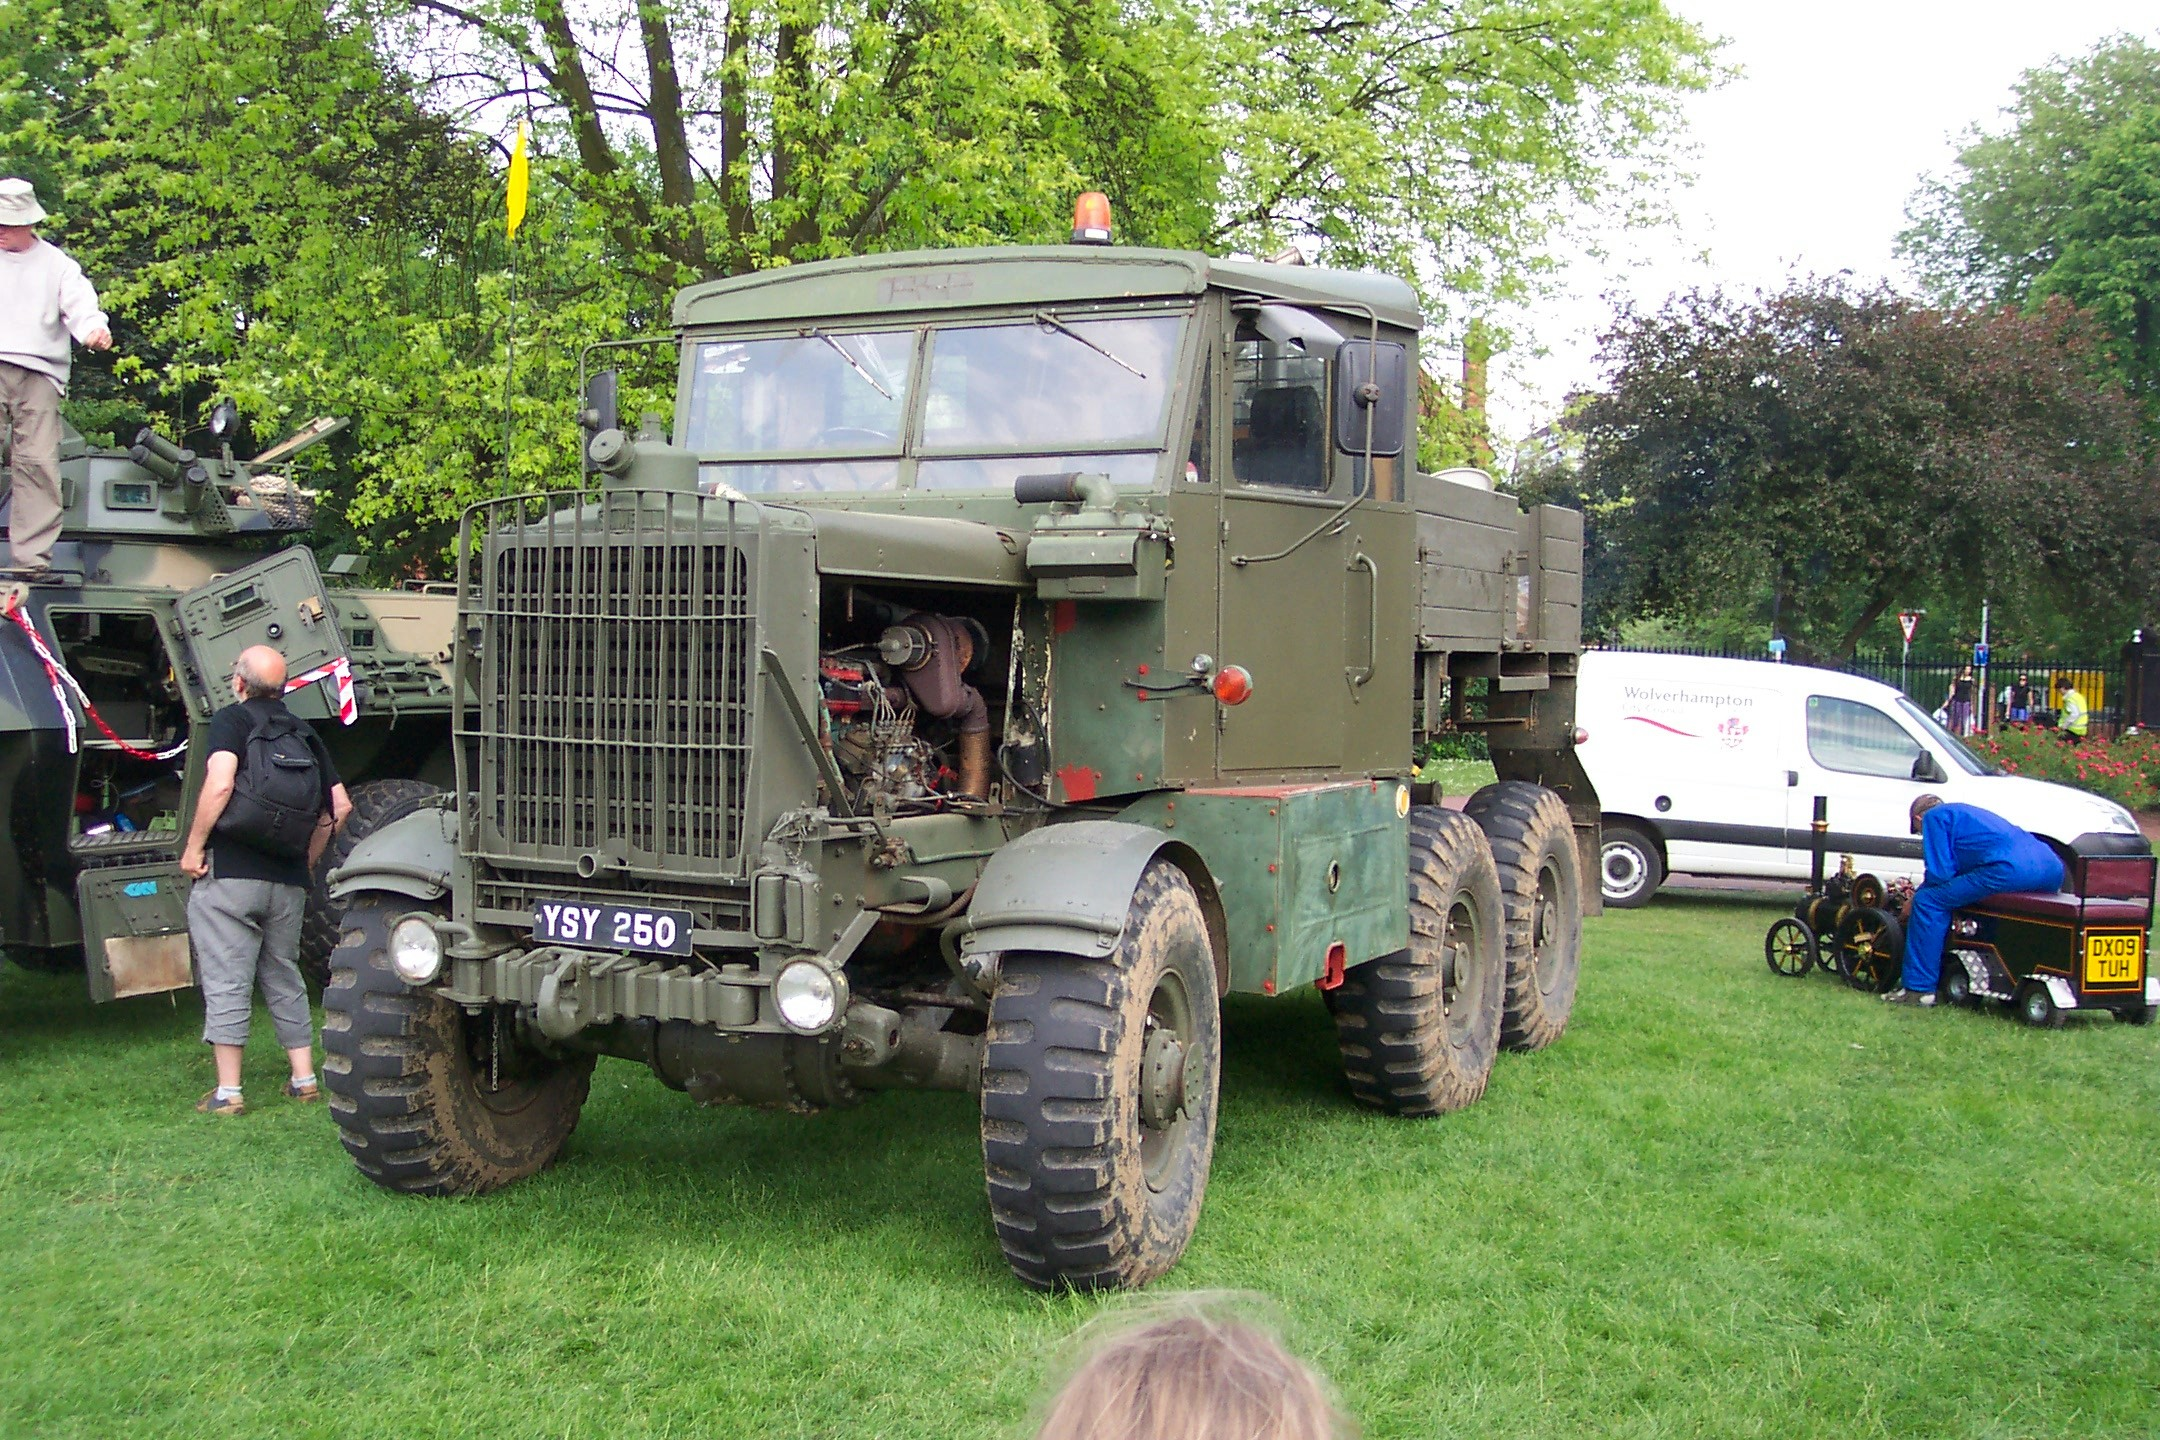 Scammell tractor photo - 5